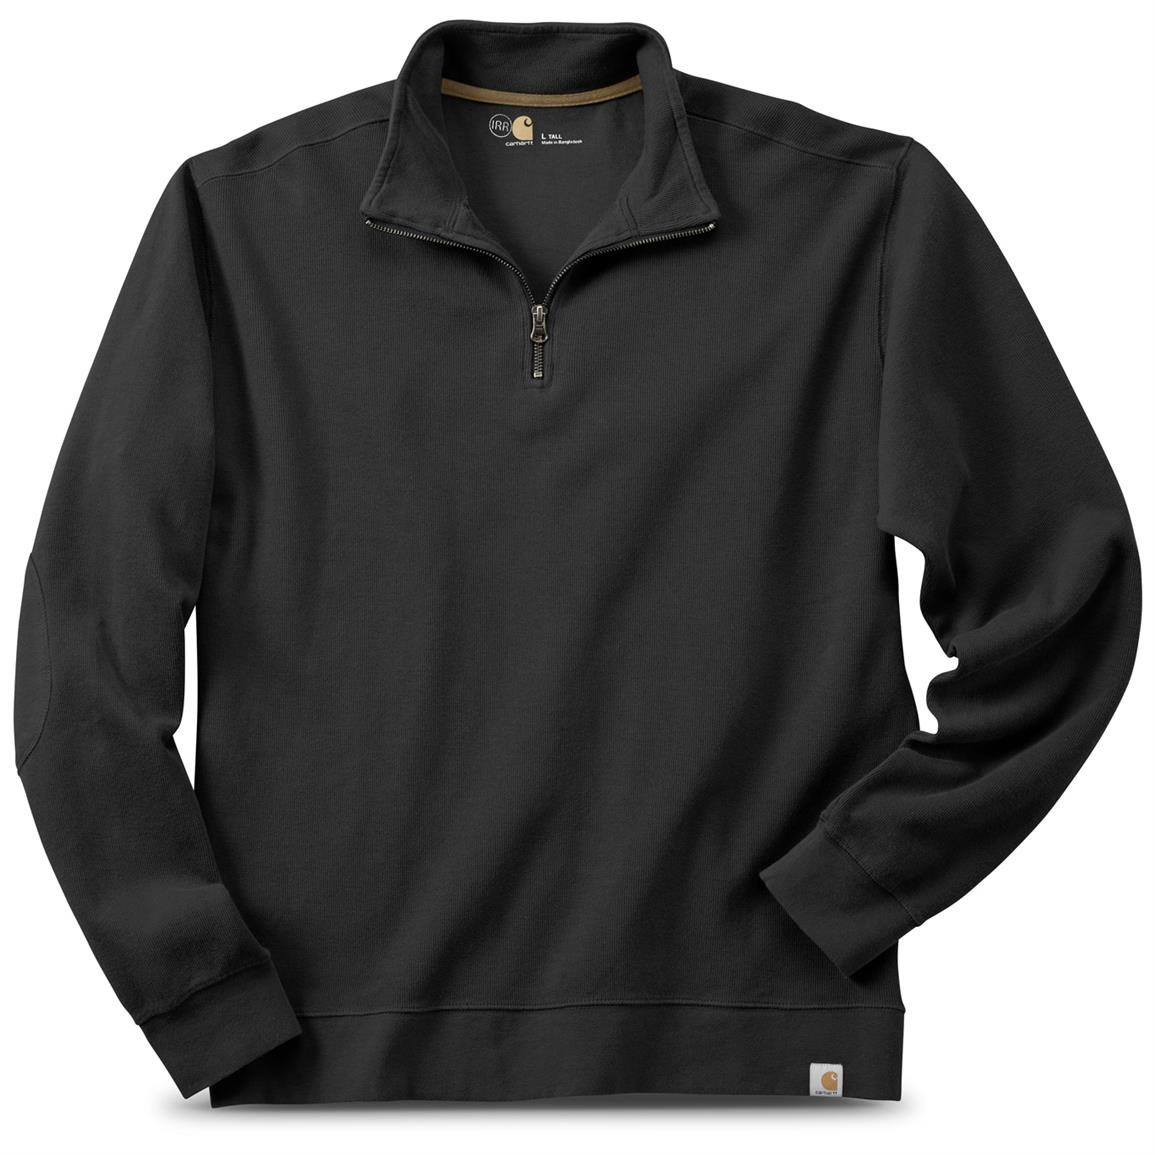 Carhartt Quarter-zip Sweater, Irregular, Black